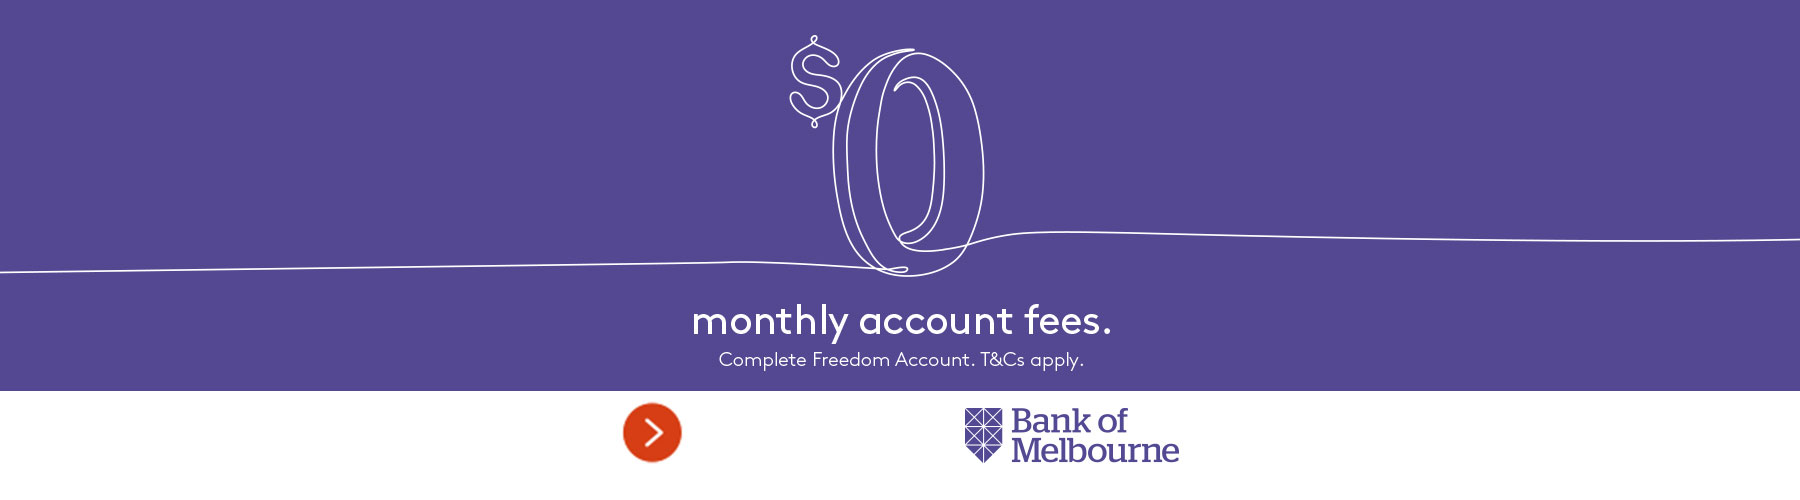 Bank of Melbourne Complete Freedom